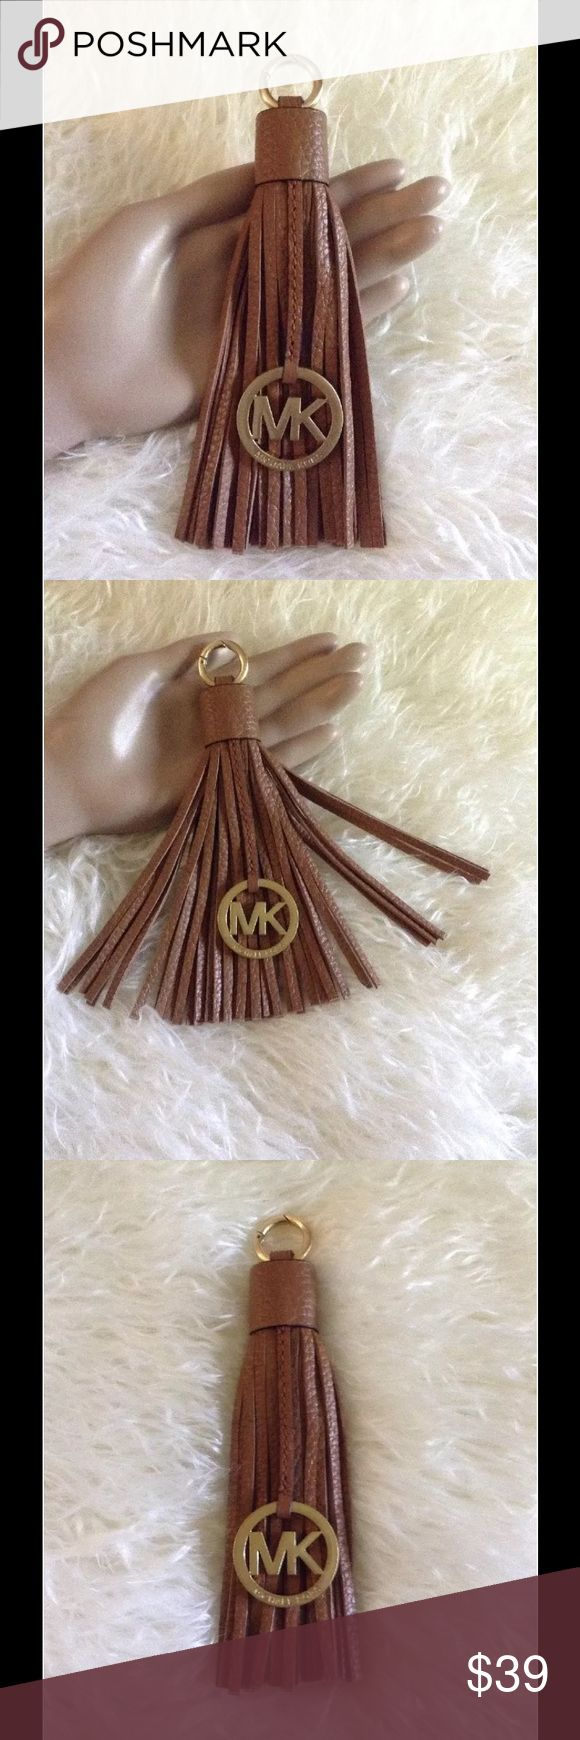 AUTHENTIC MICHAEL KORS TASSEL KEYCHAIN TAG FOB Gorgeous Michael Kors leather Tassel Charm tag.  Use as a keychain, bag charm, a Car charm, Fob, Luggage or attach to your Dog's Leash For A Posh look!  The color of the brown is Acorn.  Please compare to other MK tassel keychains that do not have the MK charm attached. Please don't forget to visit my eBay store where I offer free shipping! Smoke free home! Michael Kors Accessories Key & Card Holders